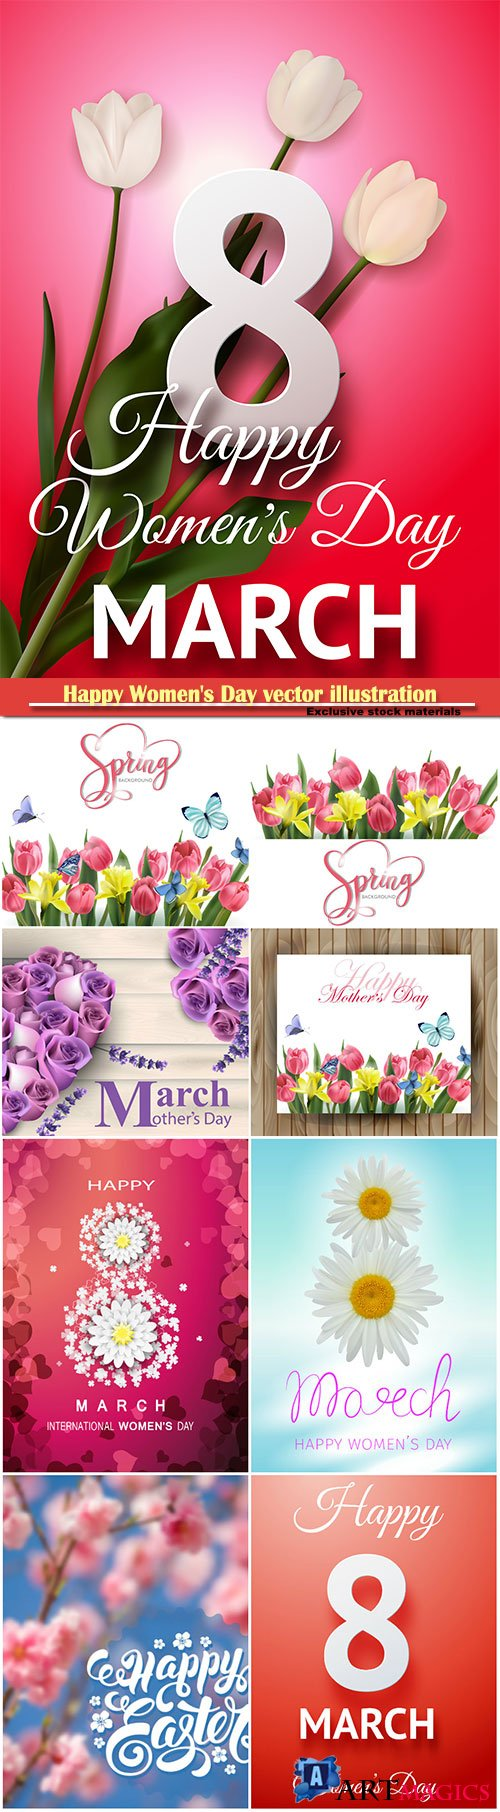 Happy Women's Day vector illustration,8 March, spring flower background # 7